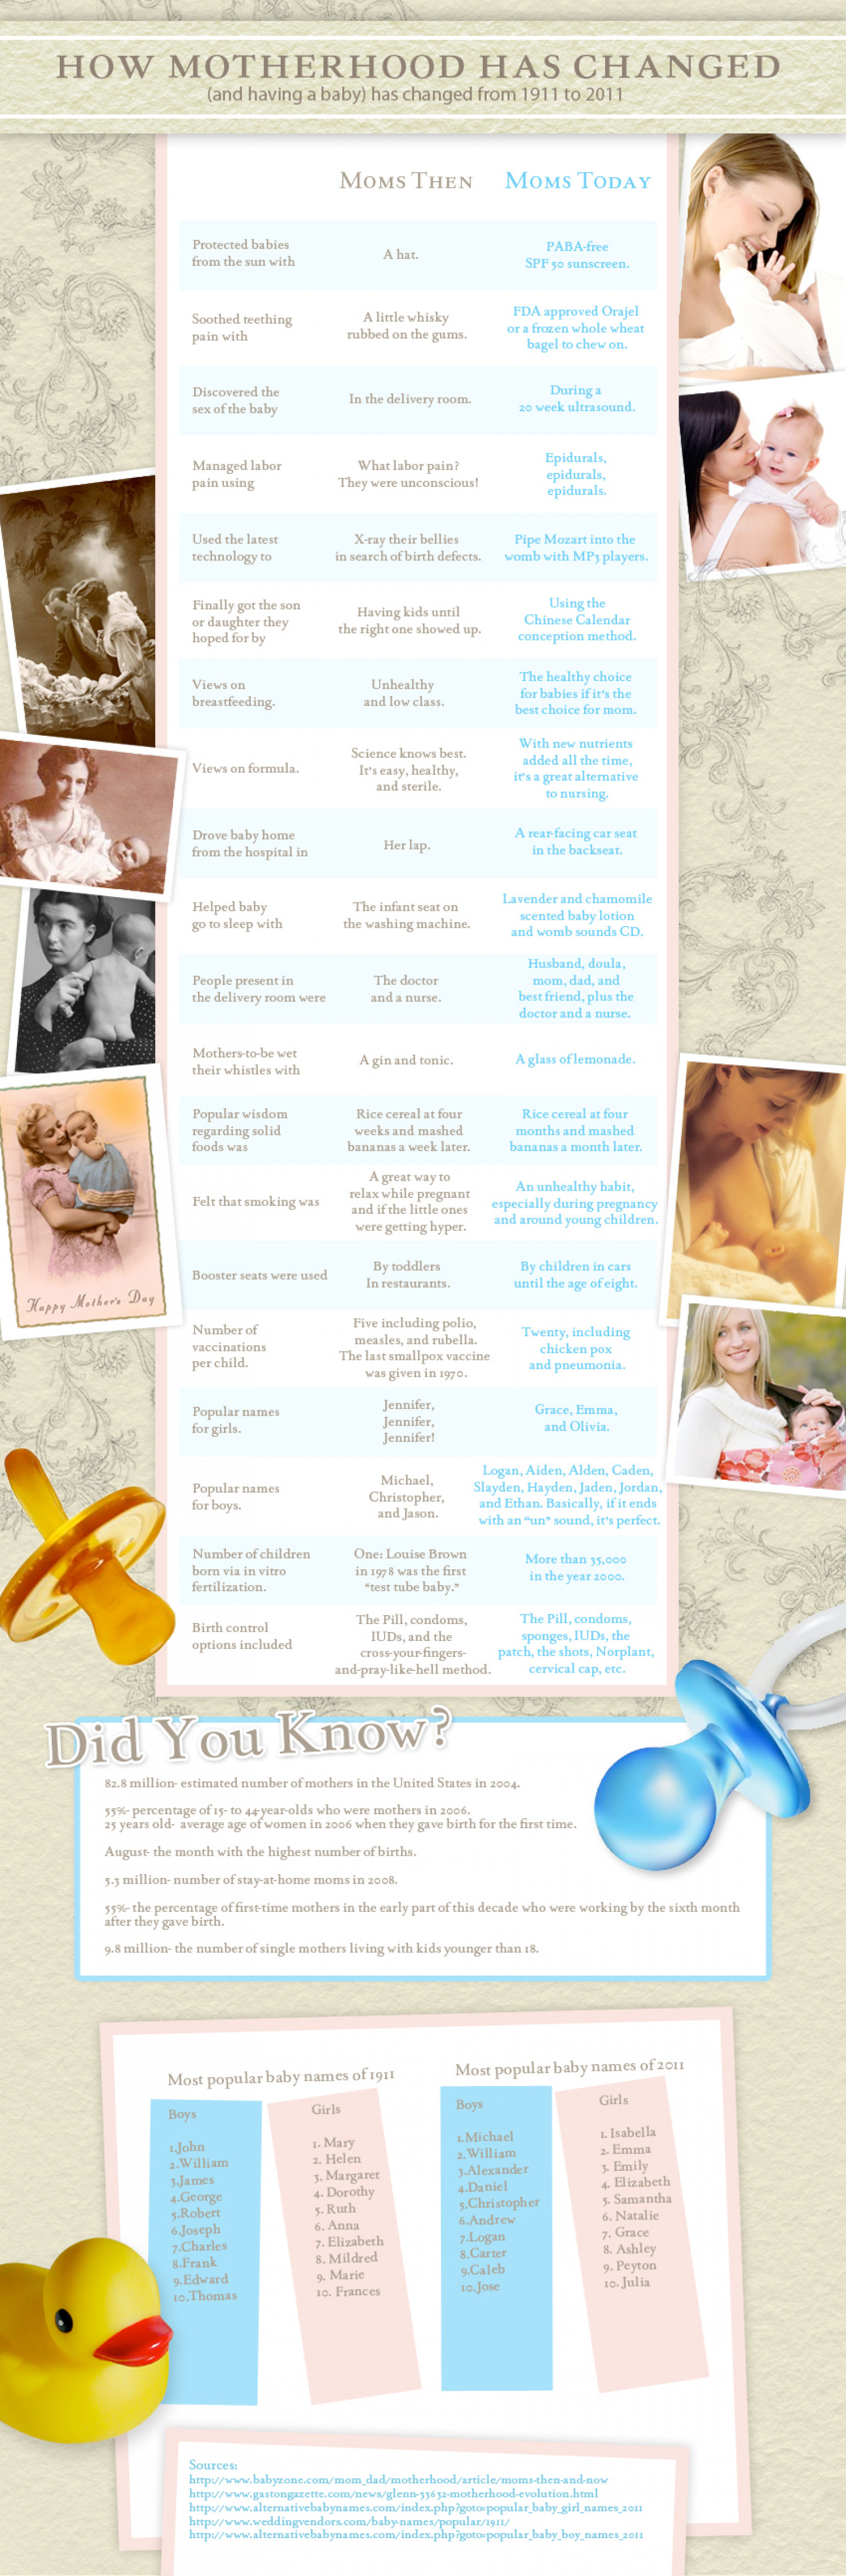 How Motherhood Has Changed During Last 100 Years  Infographic